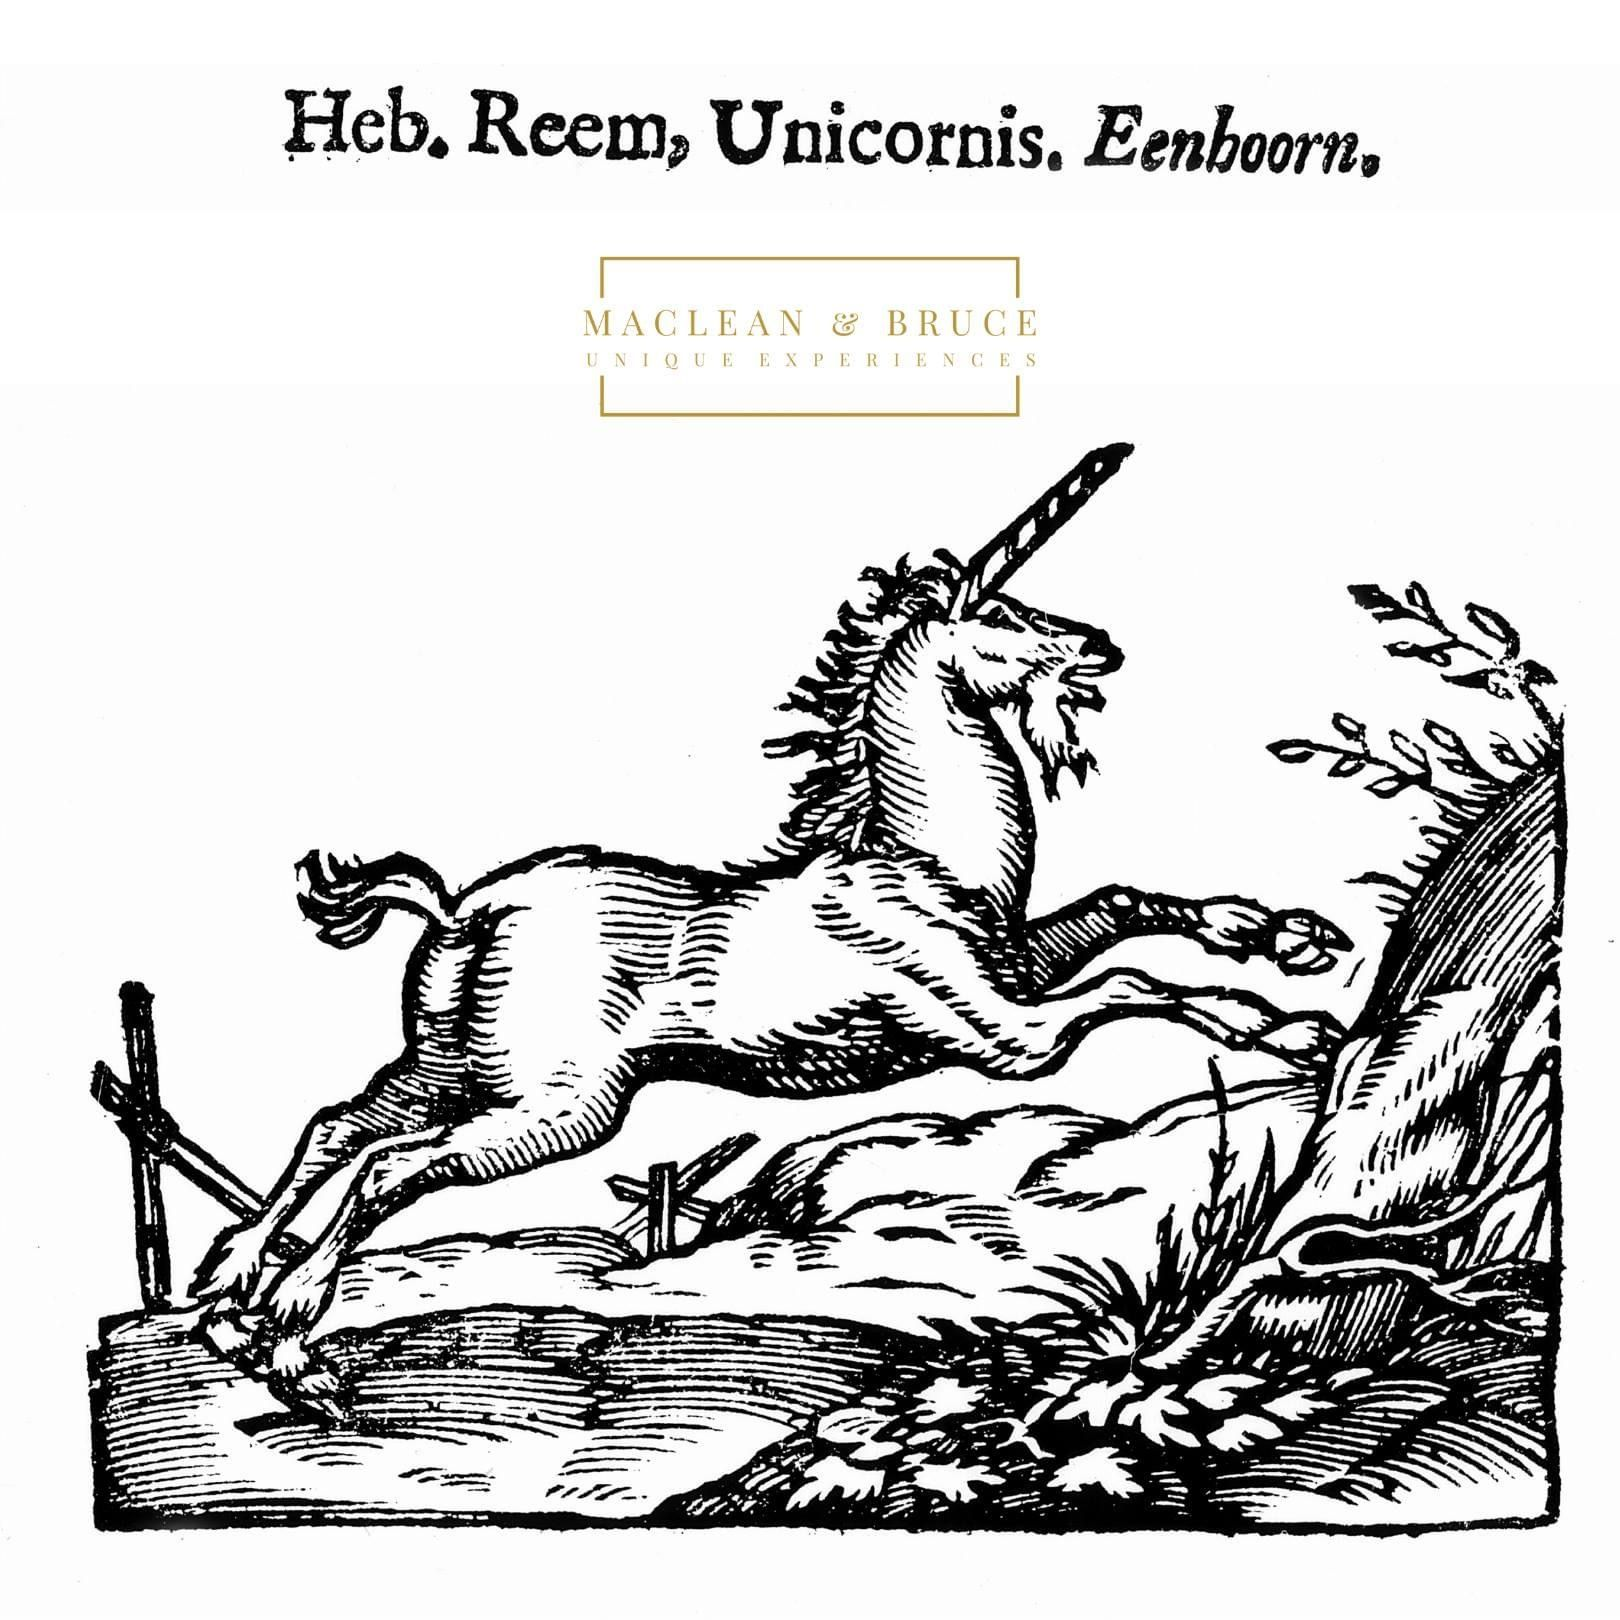 Get your party hat on, it's #NationalUnicornDay!  This mighty, mythical beast is Scotland's beloved #national animal and can be found in statues, symbols and crests all over Scotland. Undefeatable, pure, innocent and powerful, the unicorn can only be tamed by kings and virgins.  LUXURY | WHISKY | TRAVEL | EXPERIENCES |  SCOTLAND www.macleanandbruce.com |info@macleanandbruce.com  #Luxury #whisky #travel #experiences #Scotland #Scottish #luxurytravel #luxurylifestyle #DMC #hospitality #unicorn #na